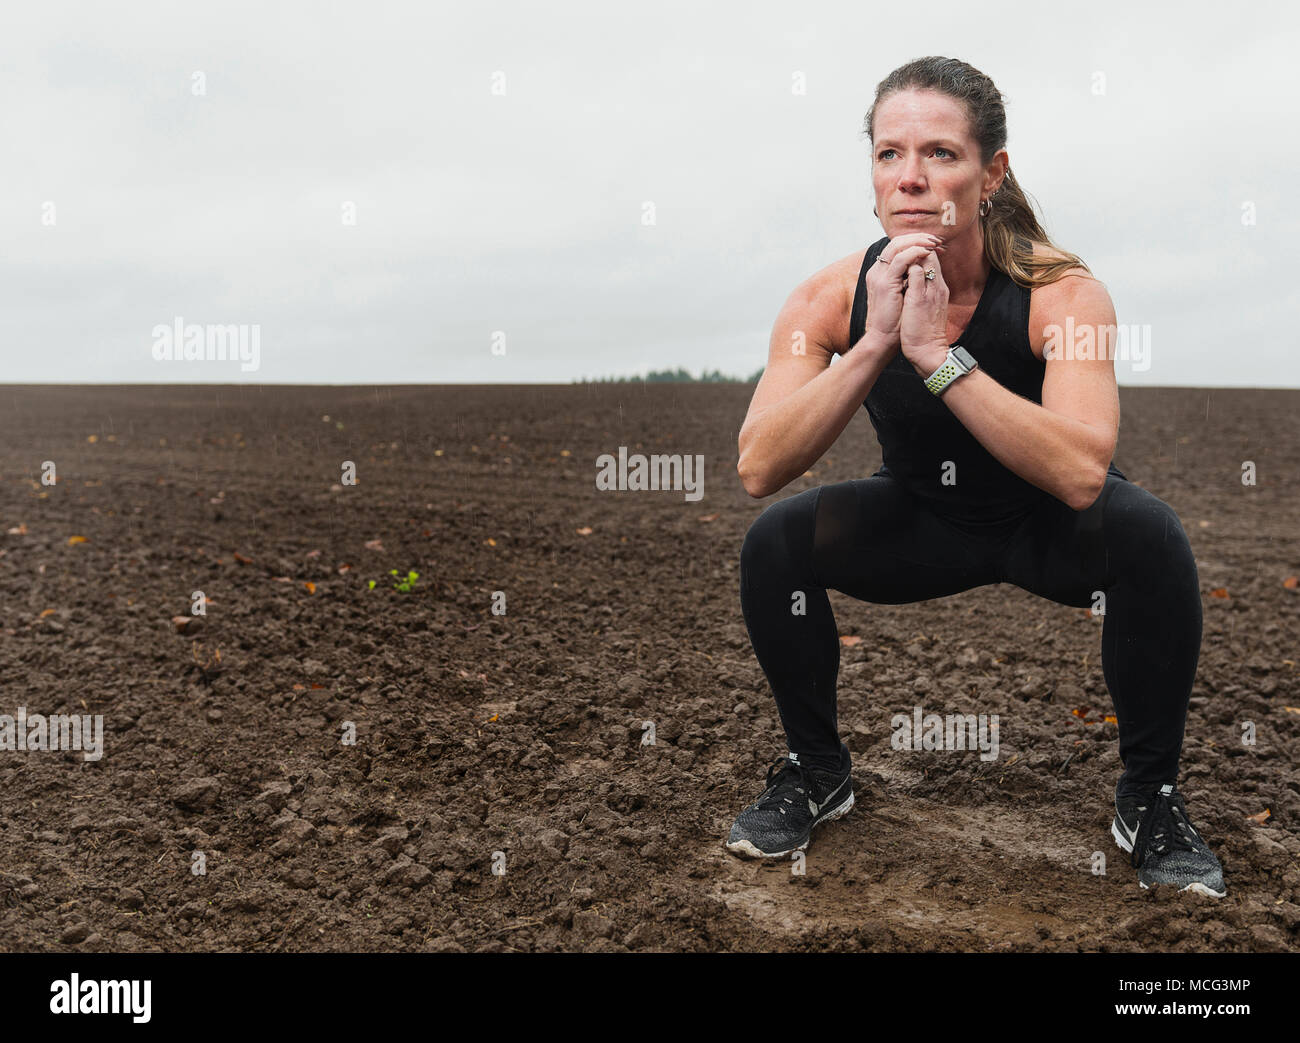 A woman working out in a field during a rain storm. - Stock Image